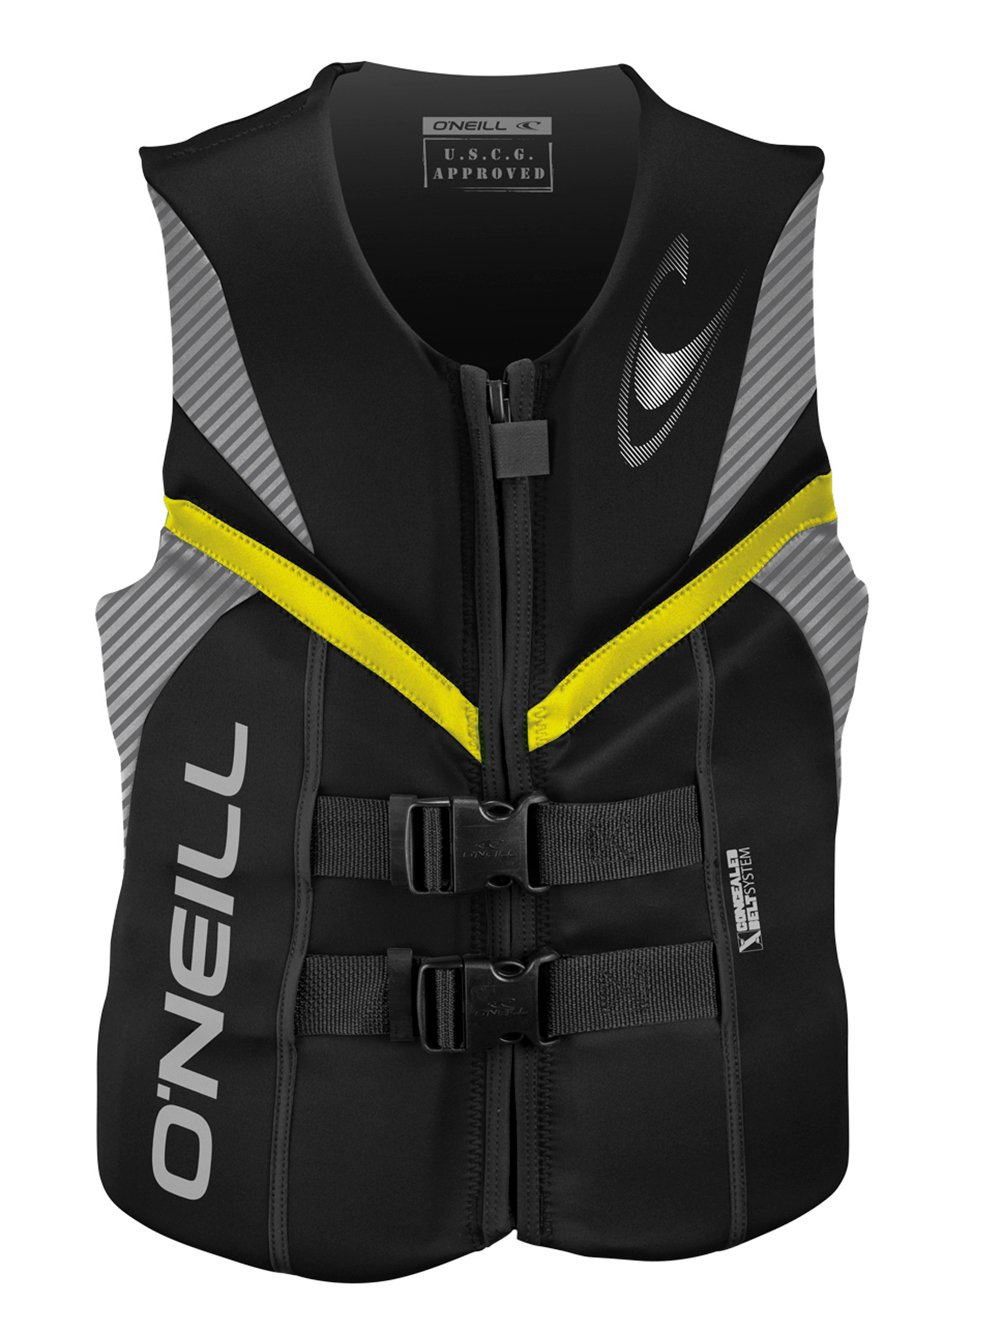 O'Neill mens Reactor USCG life vest 3XL Black/smoke/yellow (4720) by O'Neill Wetsuits